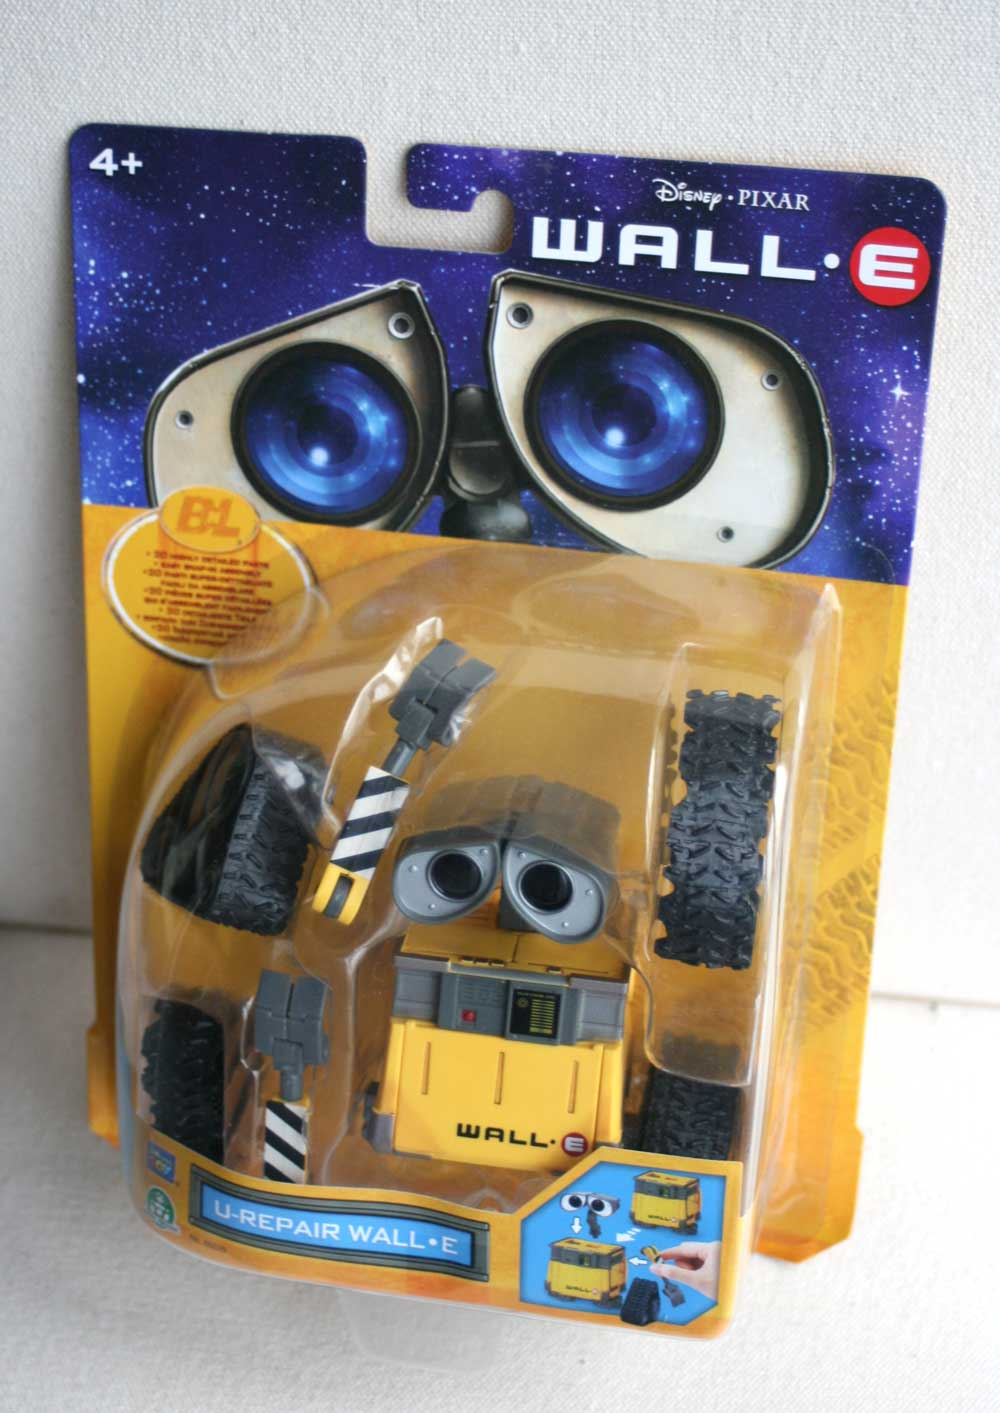 thinkway toys u repair wall e 2008. Black Bedroom Furniture Sets. Home Design Ideas